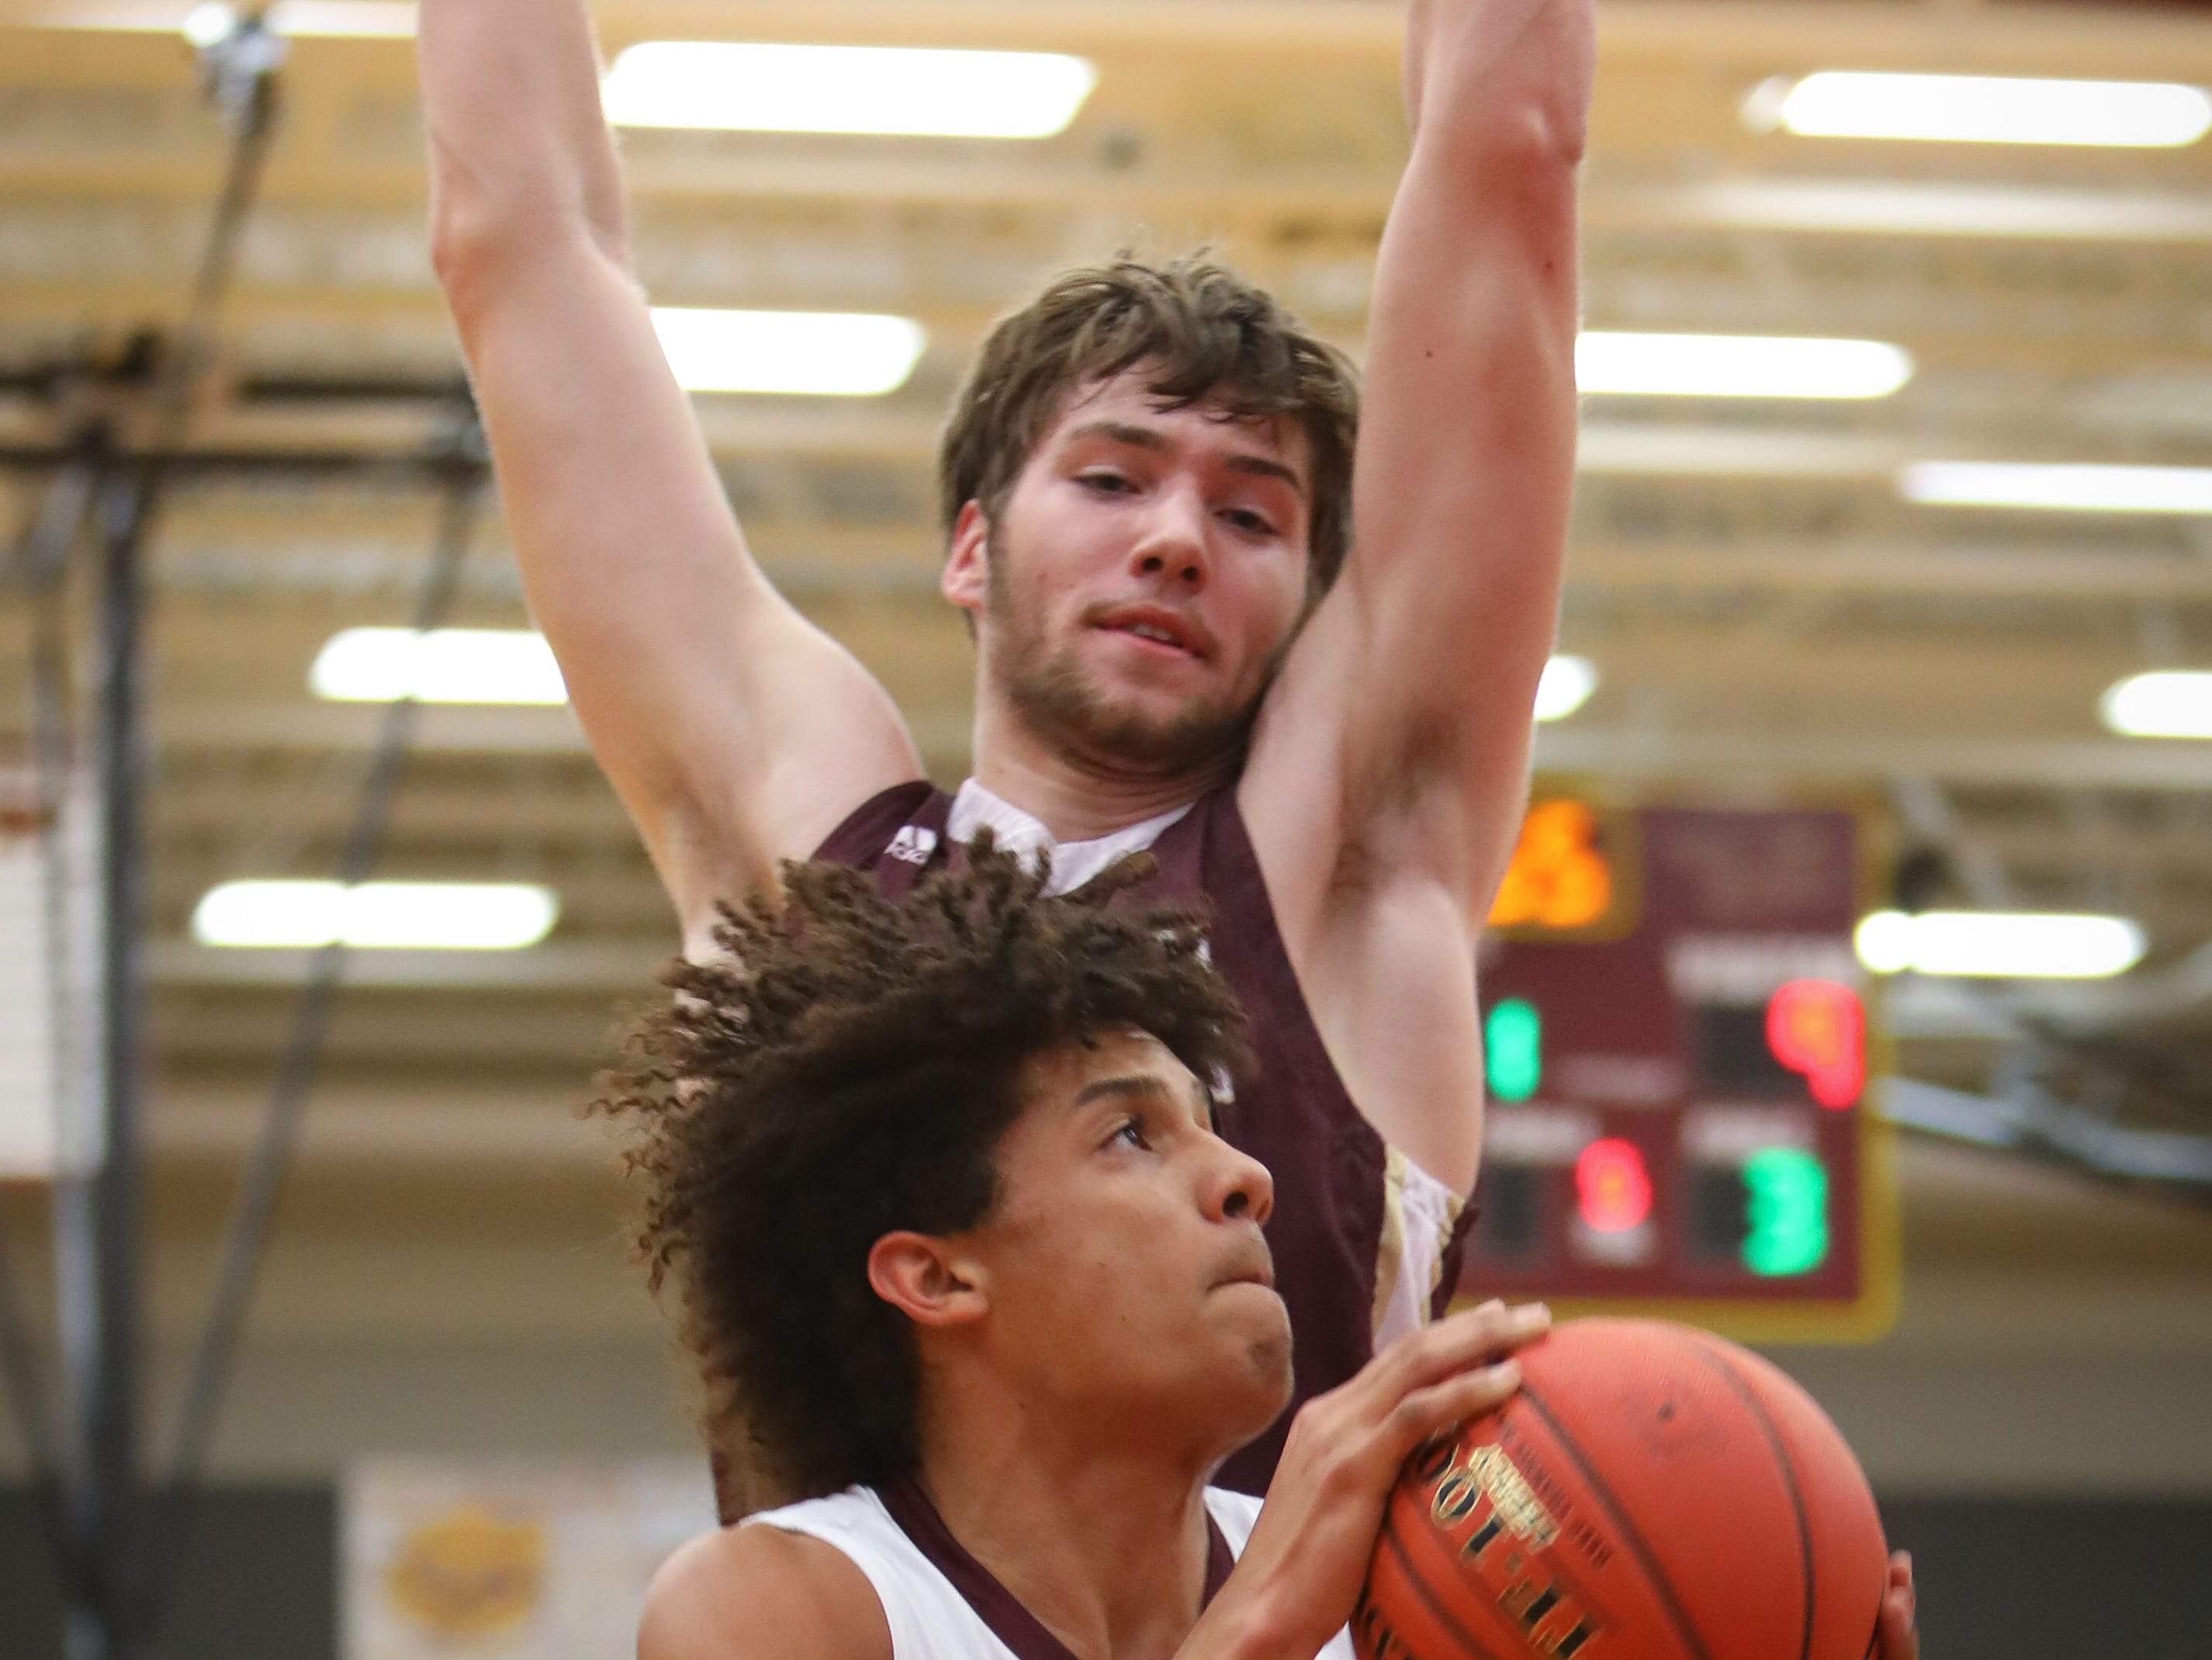 Ankeny junior Braxton Bayless goes for a lay-up past Lincoln senior Logan Sharp during a boys high school basketball game between the Lincoln Railsplitters and the Ankeny Hawks at Ankeny High School on Dec. 4, 2018 in Ankeny, Iowa.